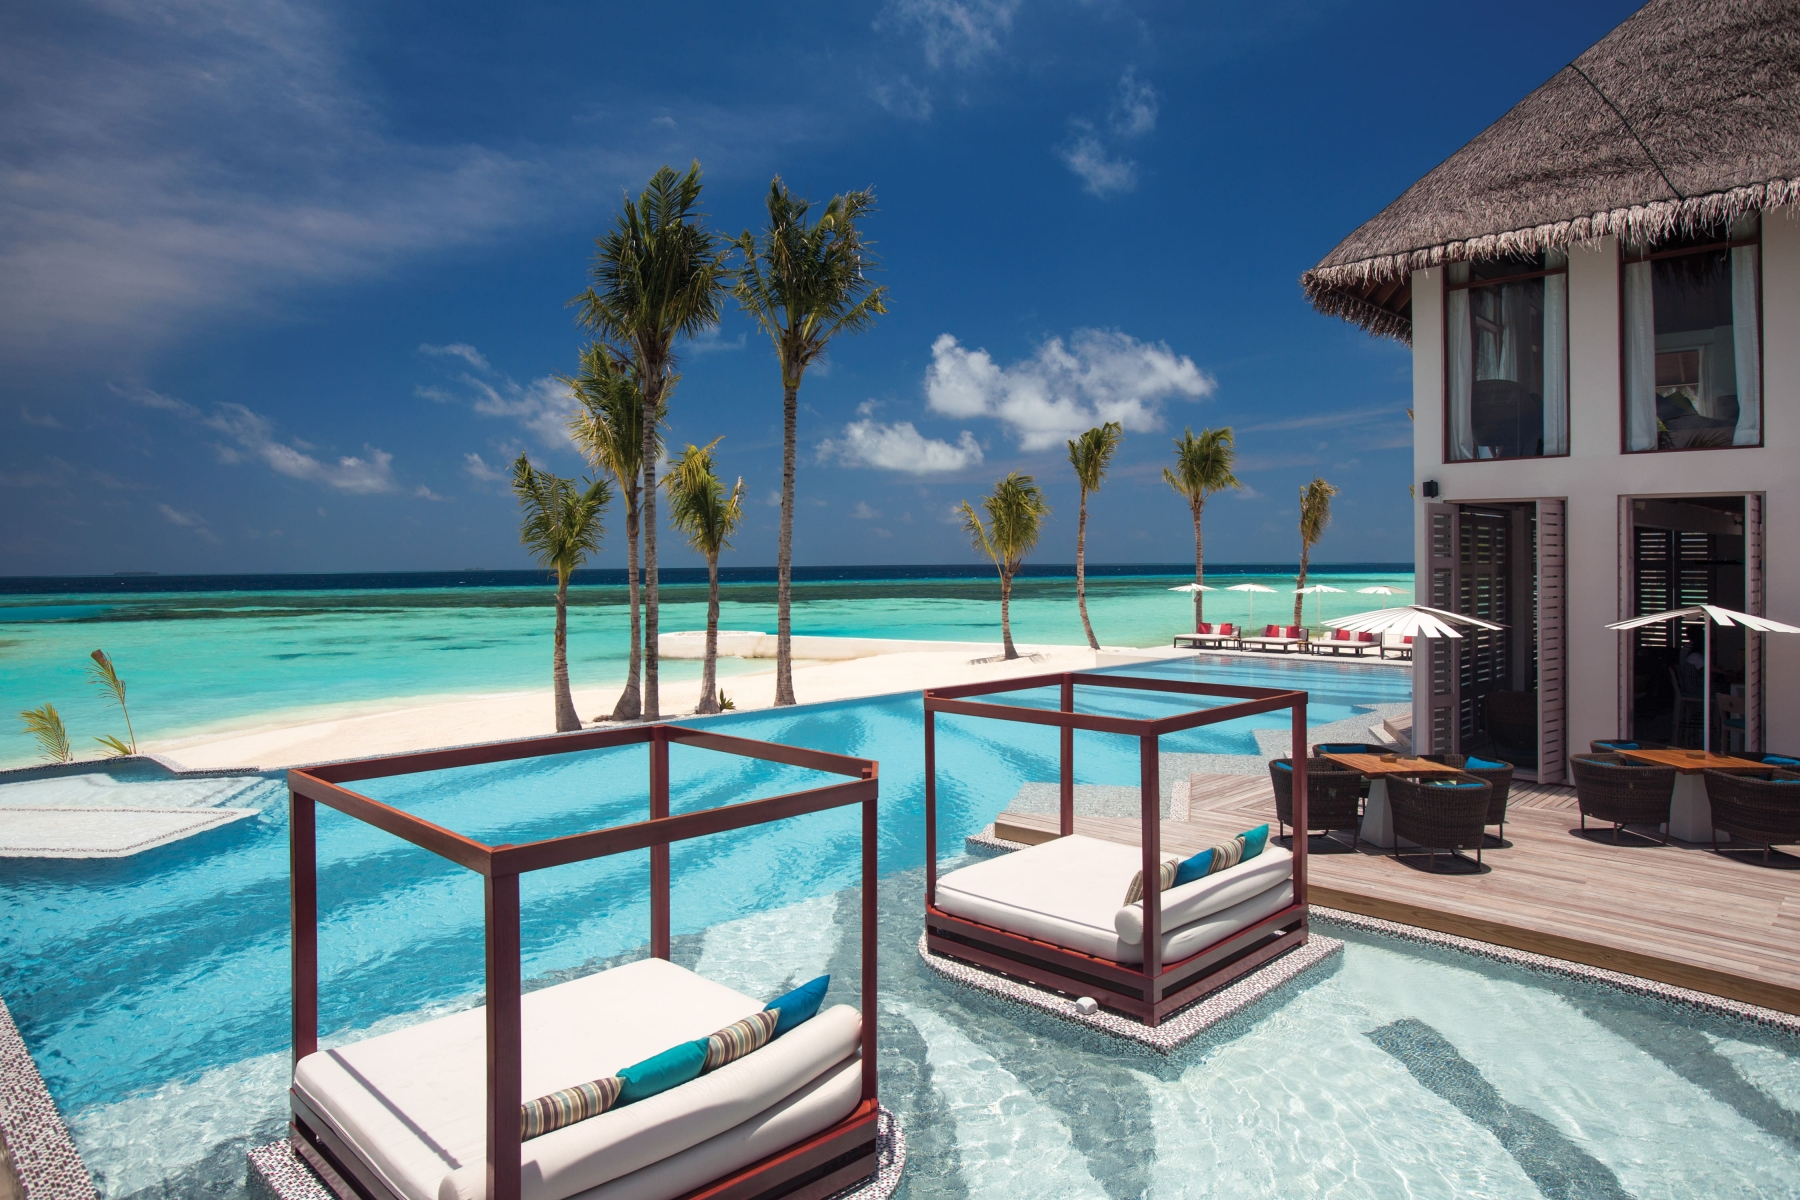 Joie-De-Vivre-Cabanas-and-Pool-with-View-OZEN-by-Atmosphere-min